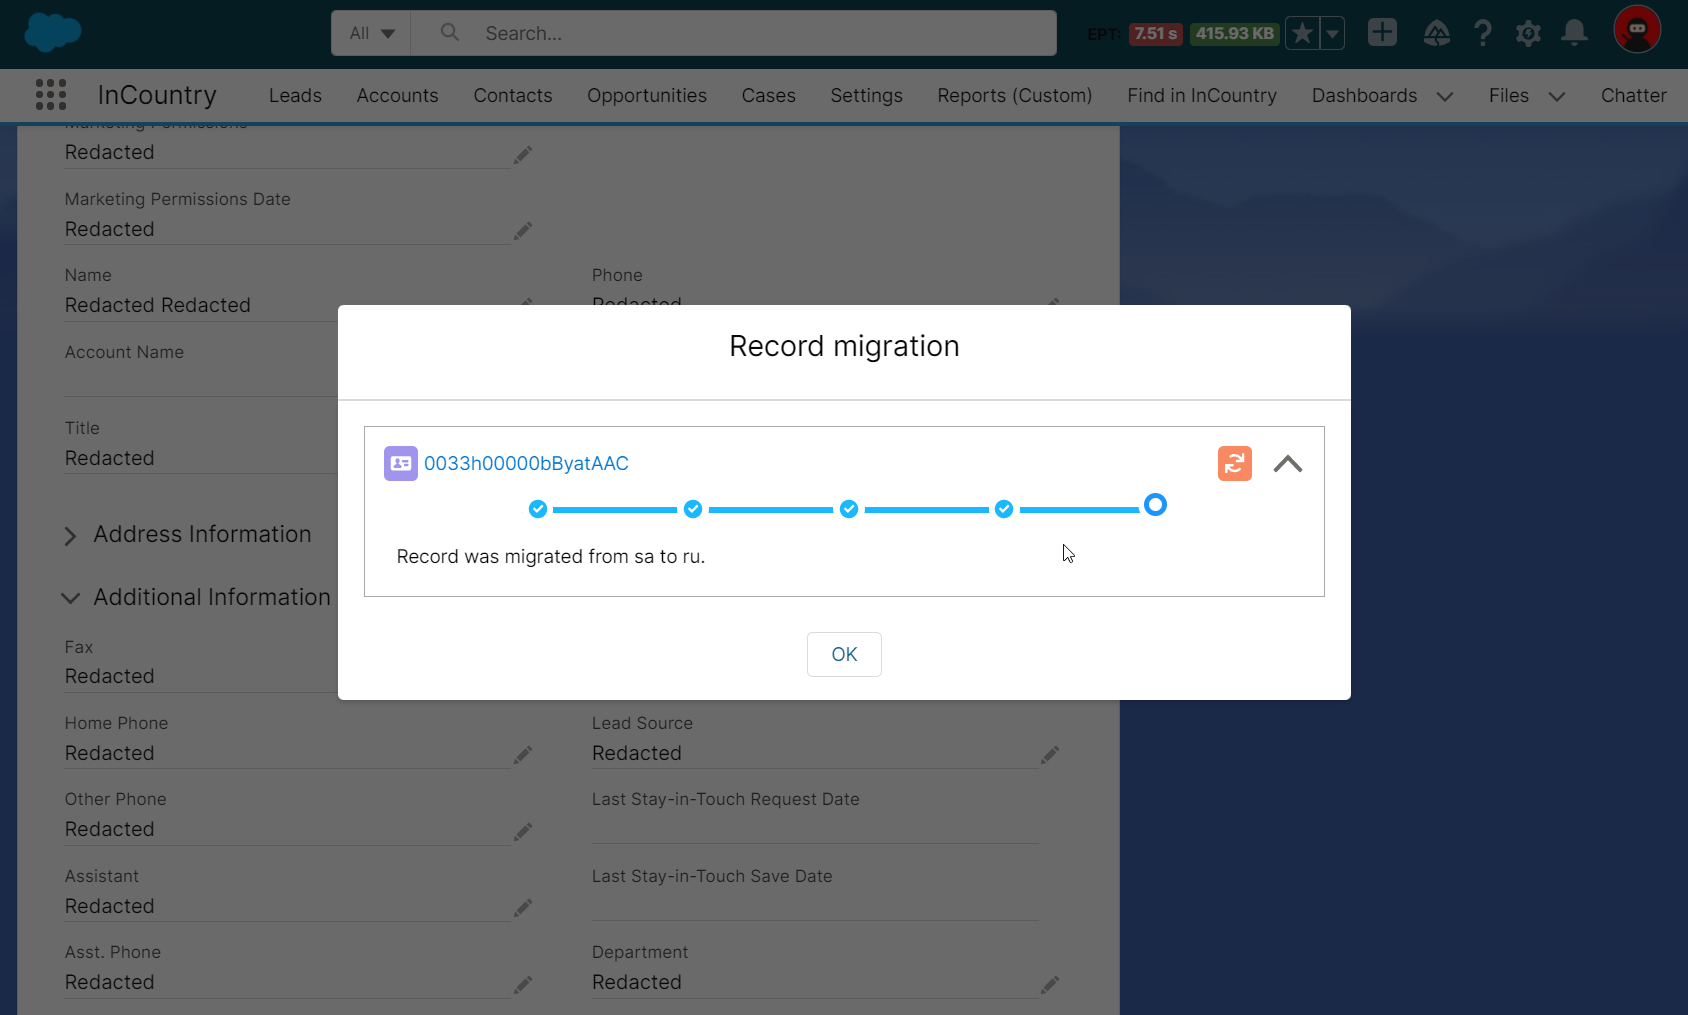 Record migration form - completed